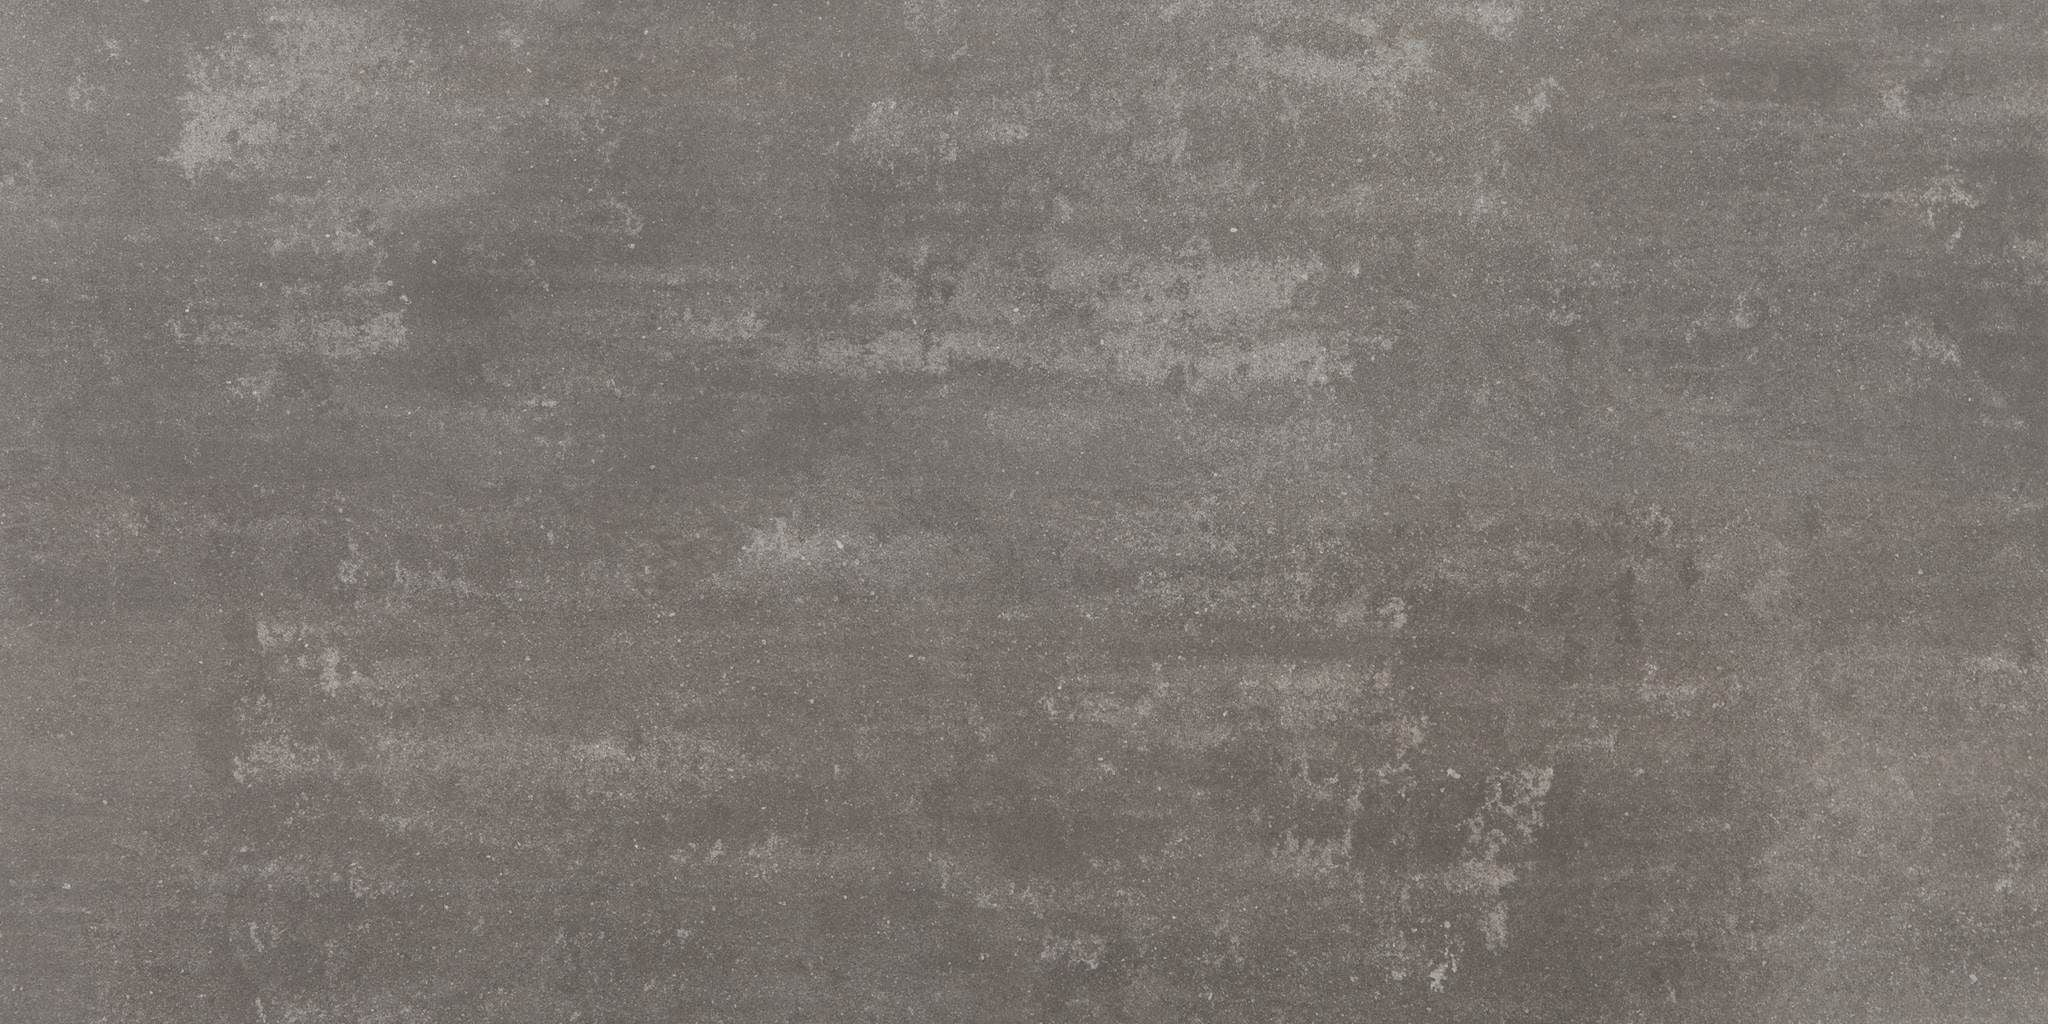 Virgo Gris Matte (Anti-Slip) 20